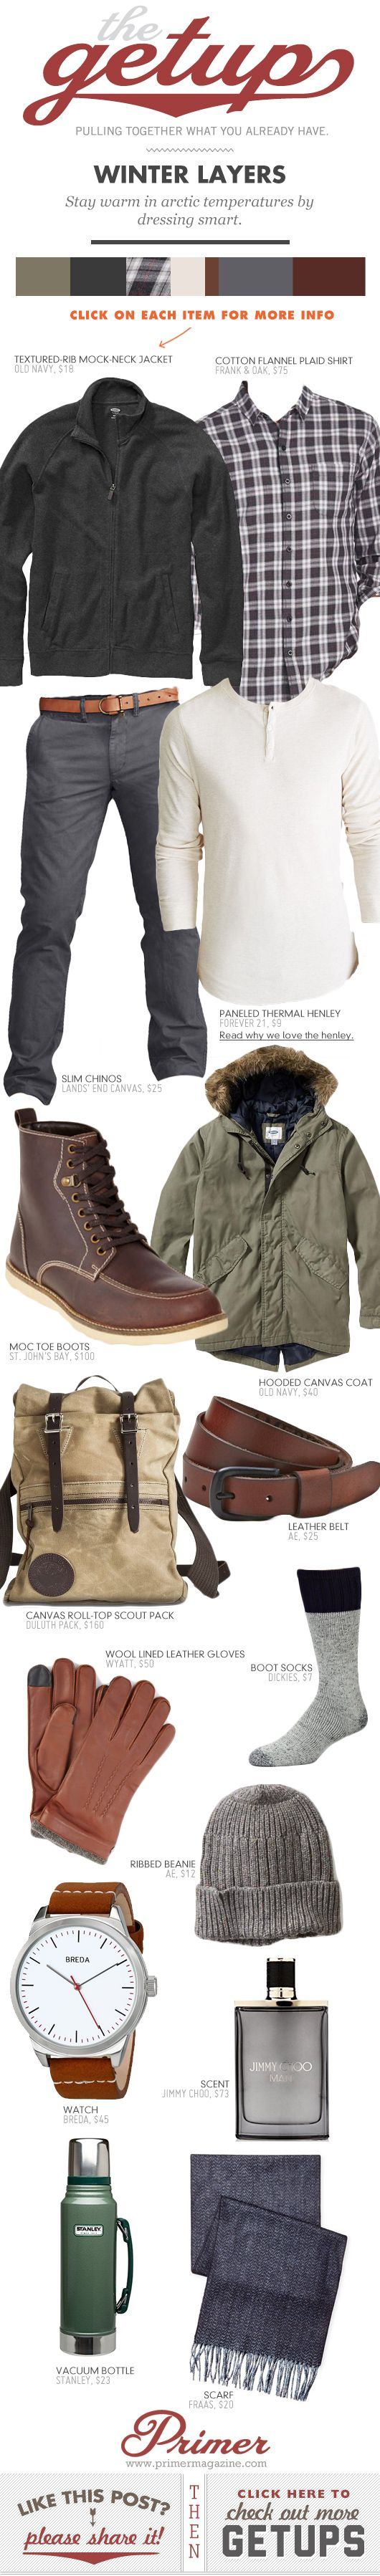 The Getup: Winter Layers - Primer